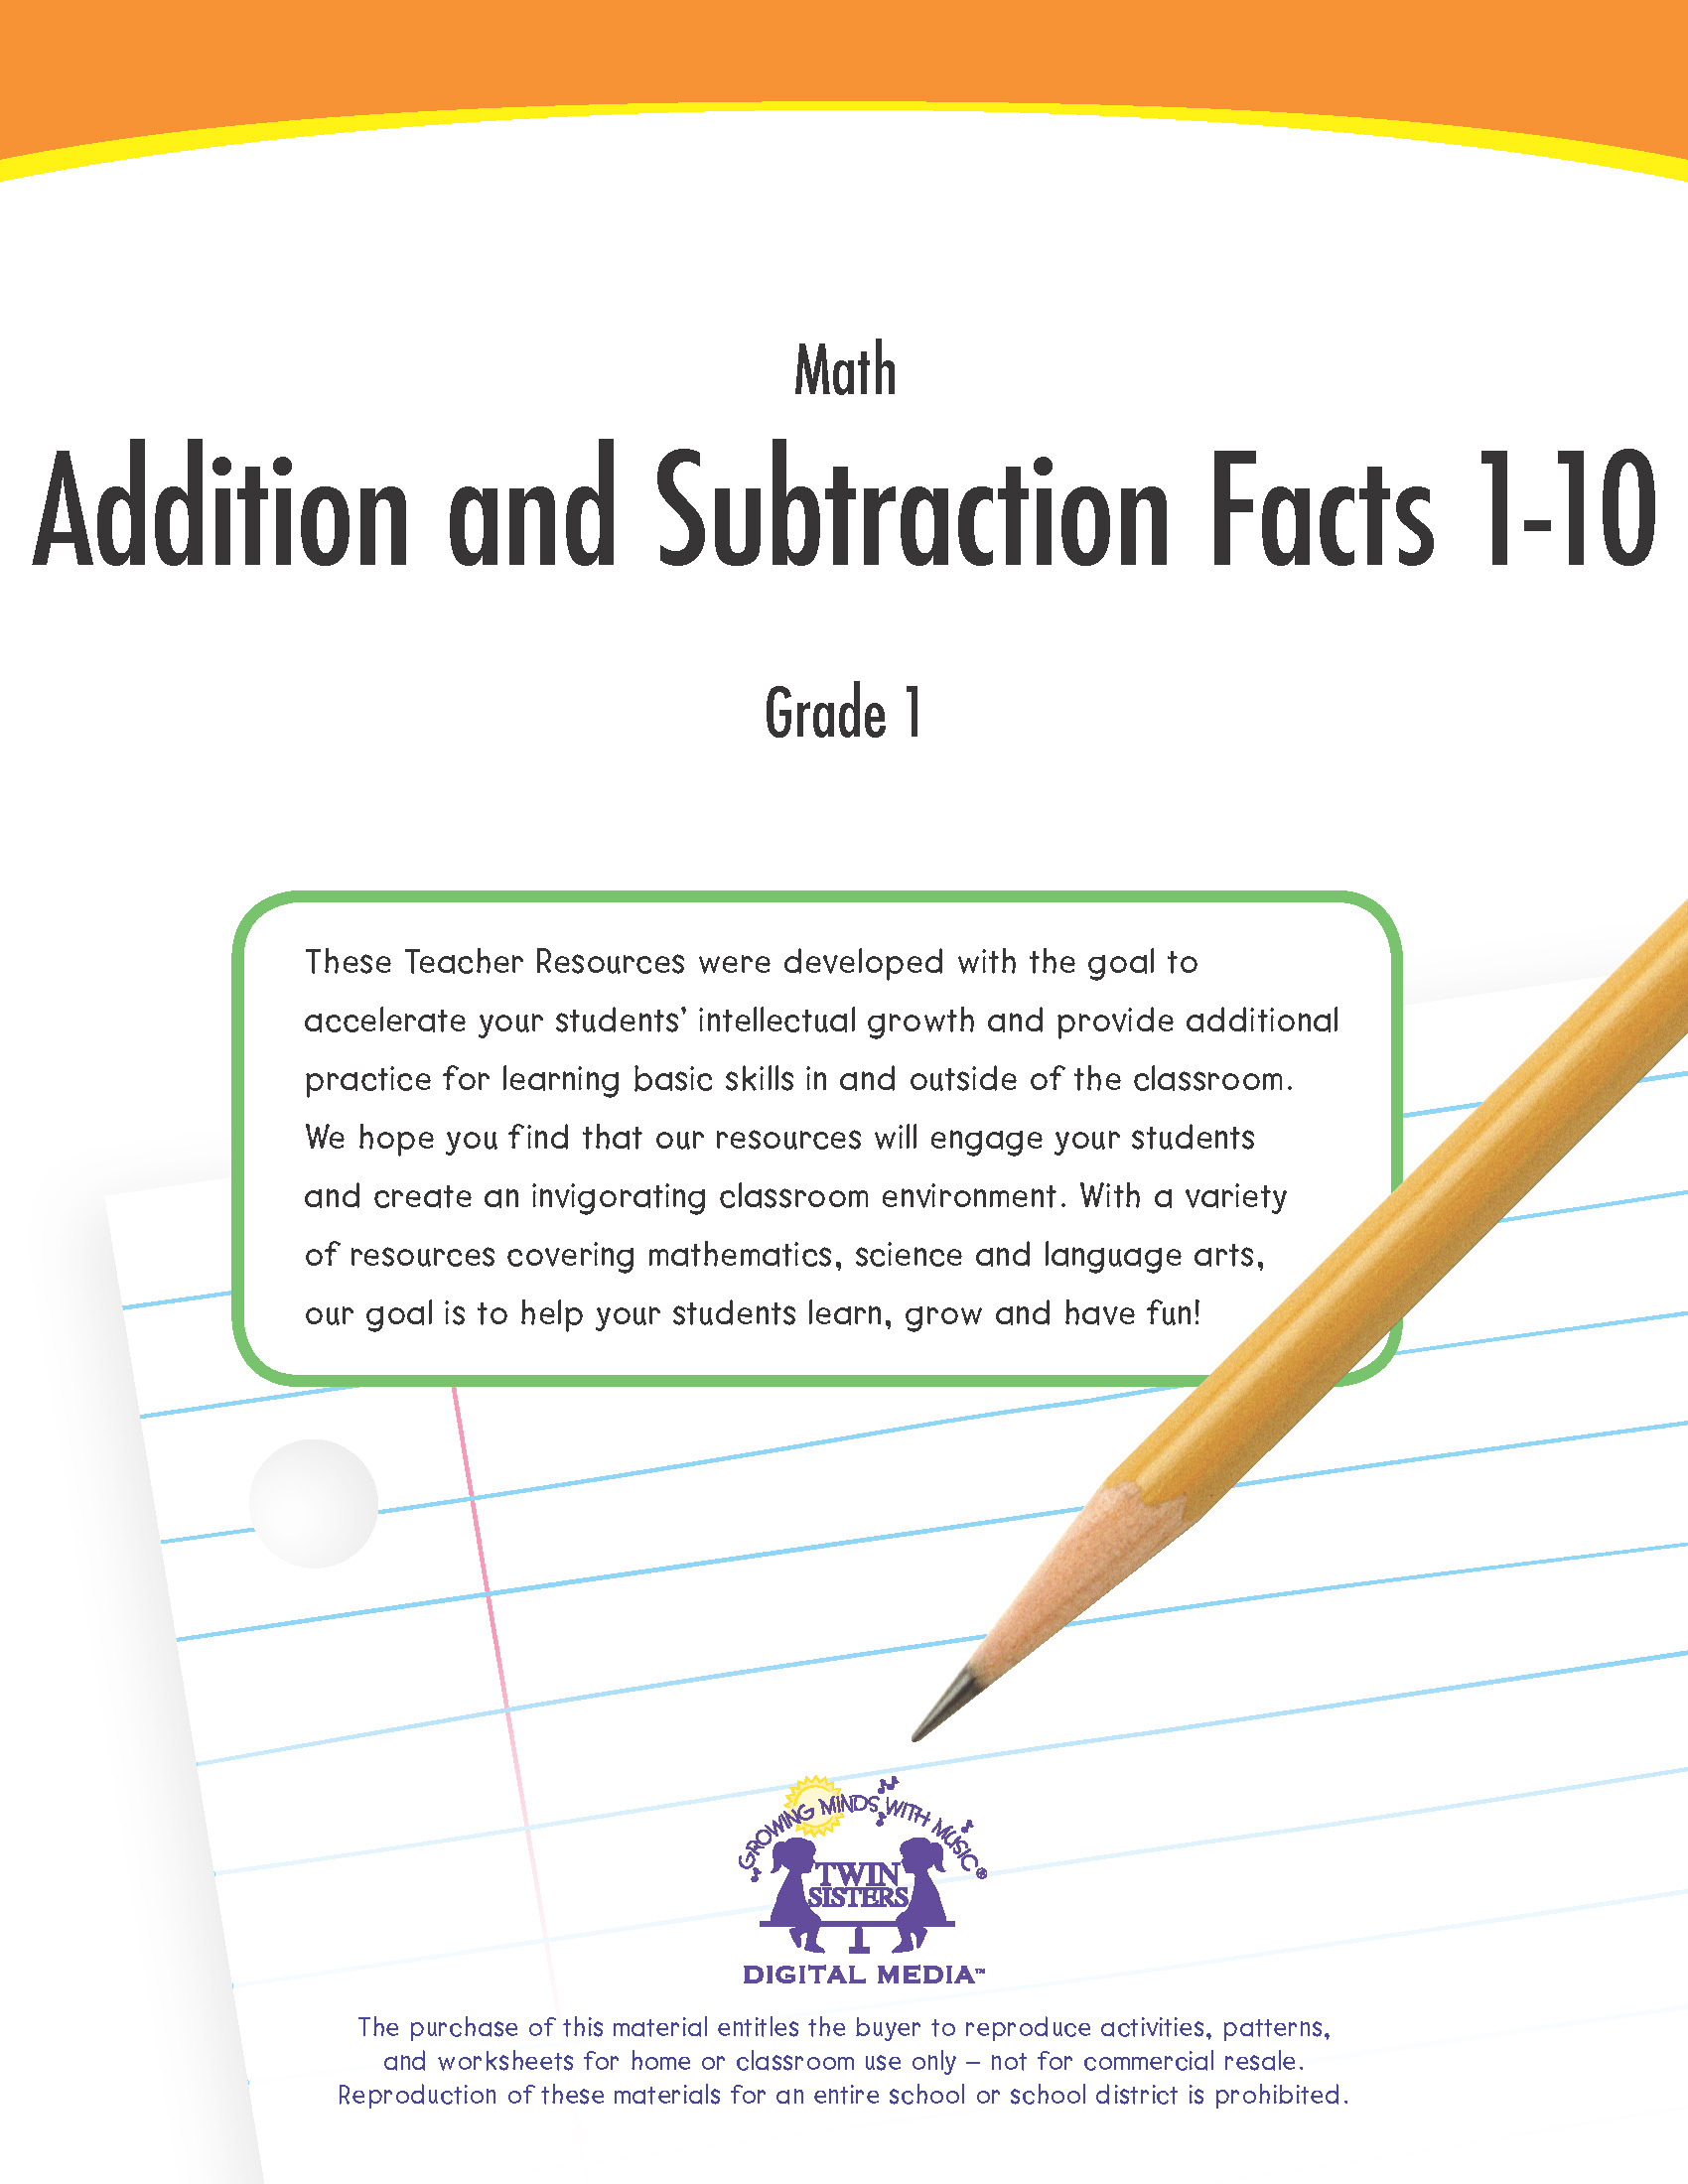 Math Grade 1: Addition and Subtraction Facts 1-10 | Twin Sisters